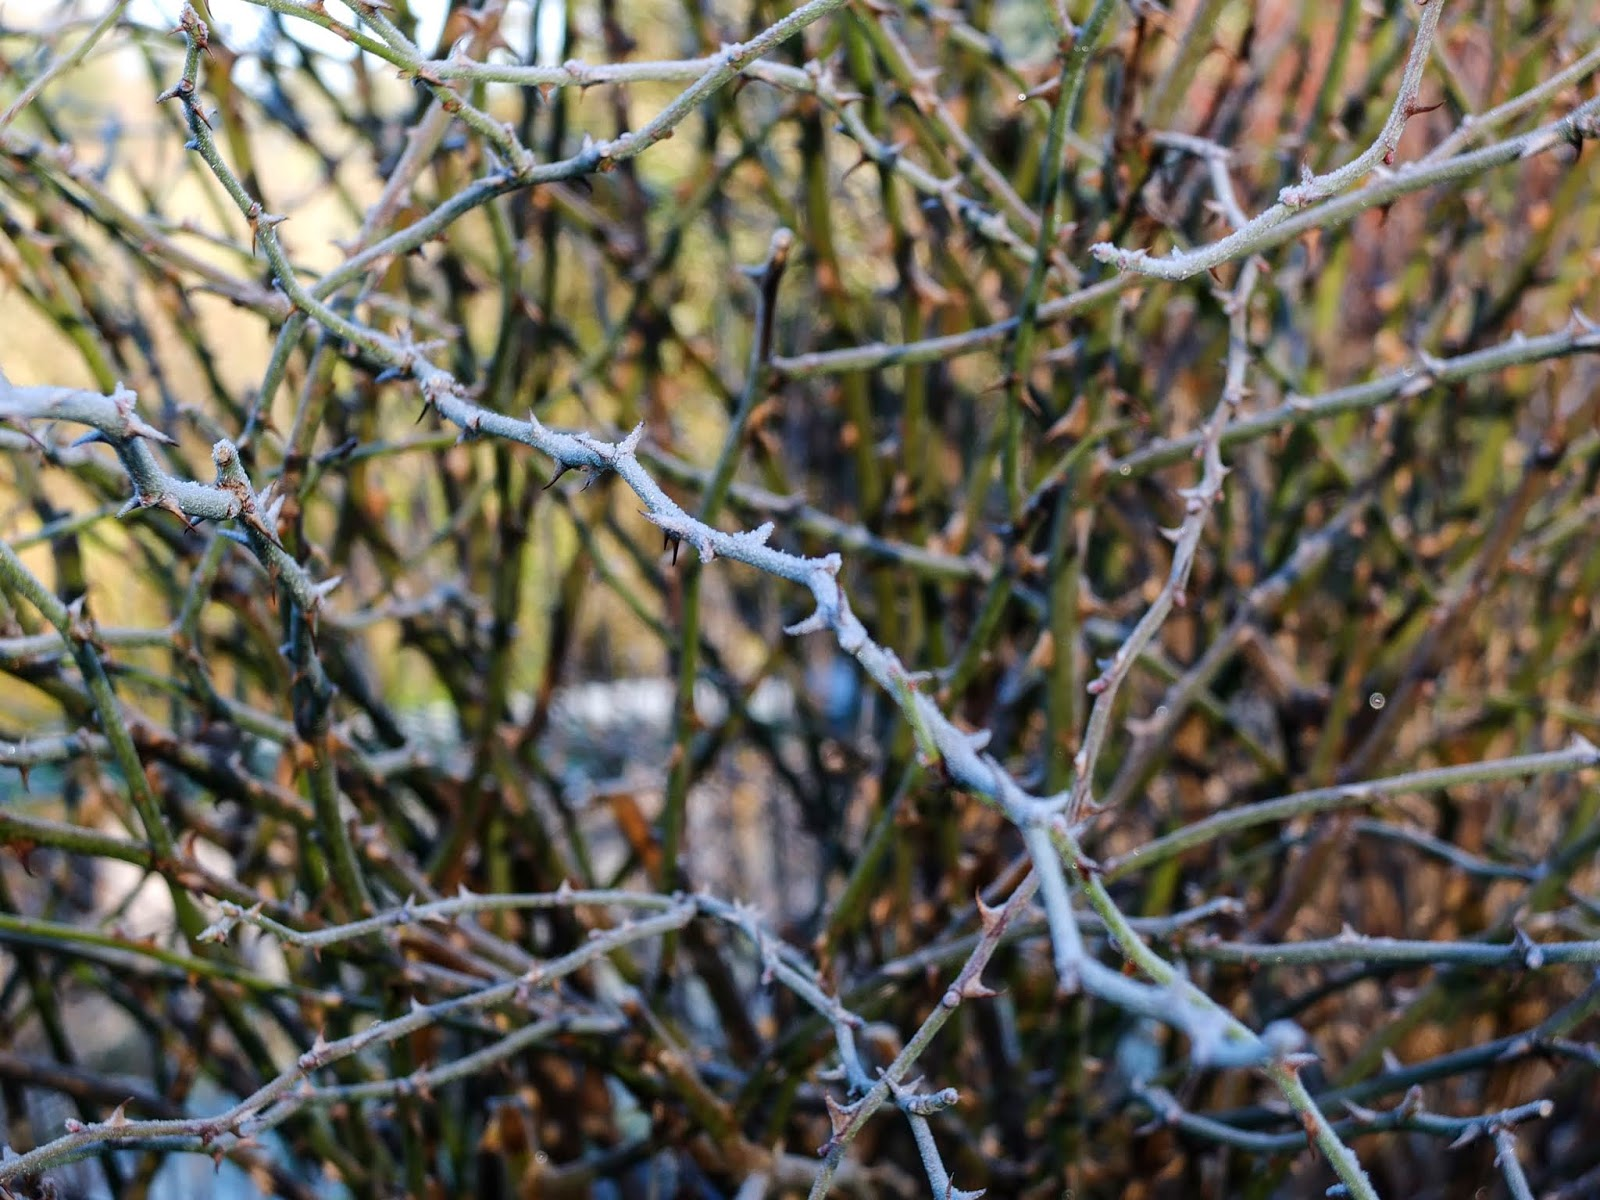 A close up of a frost covered rose branch.